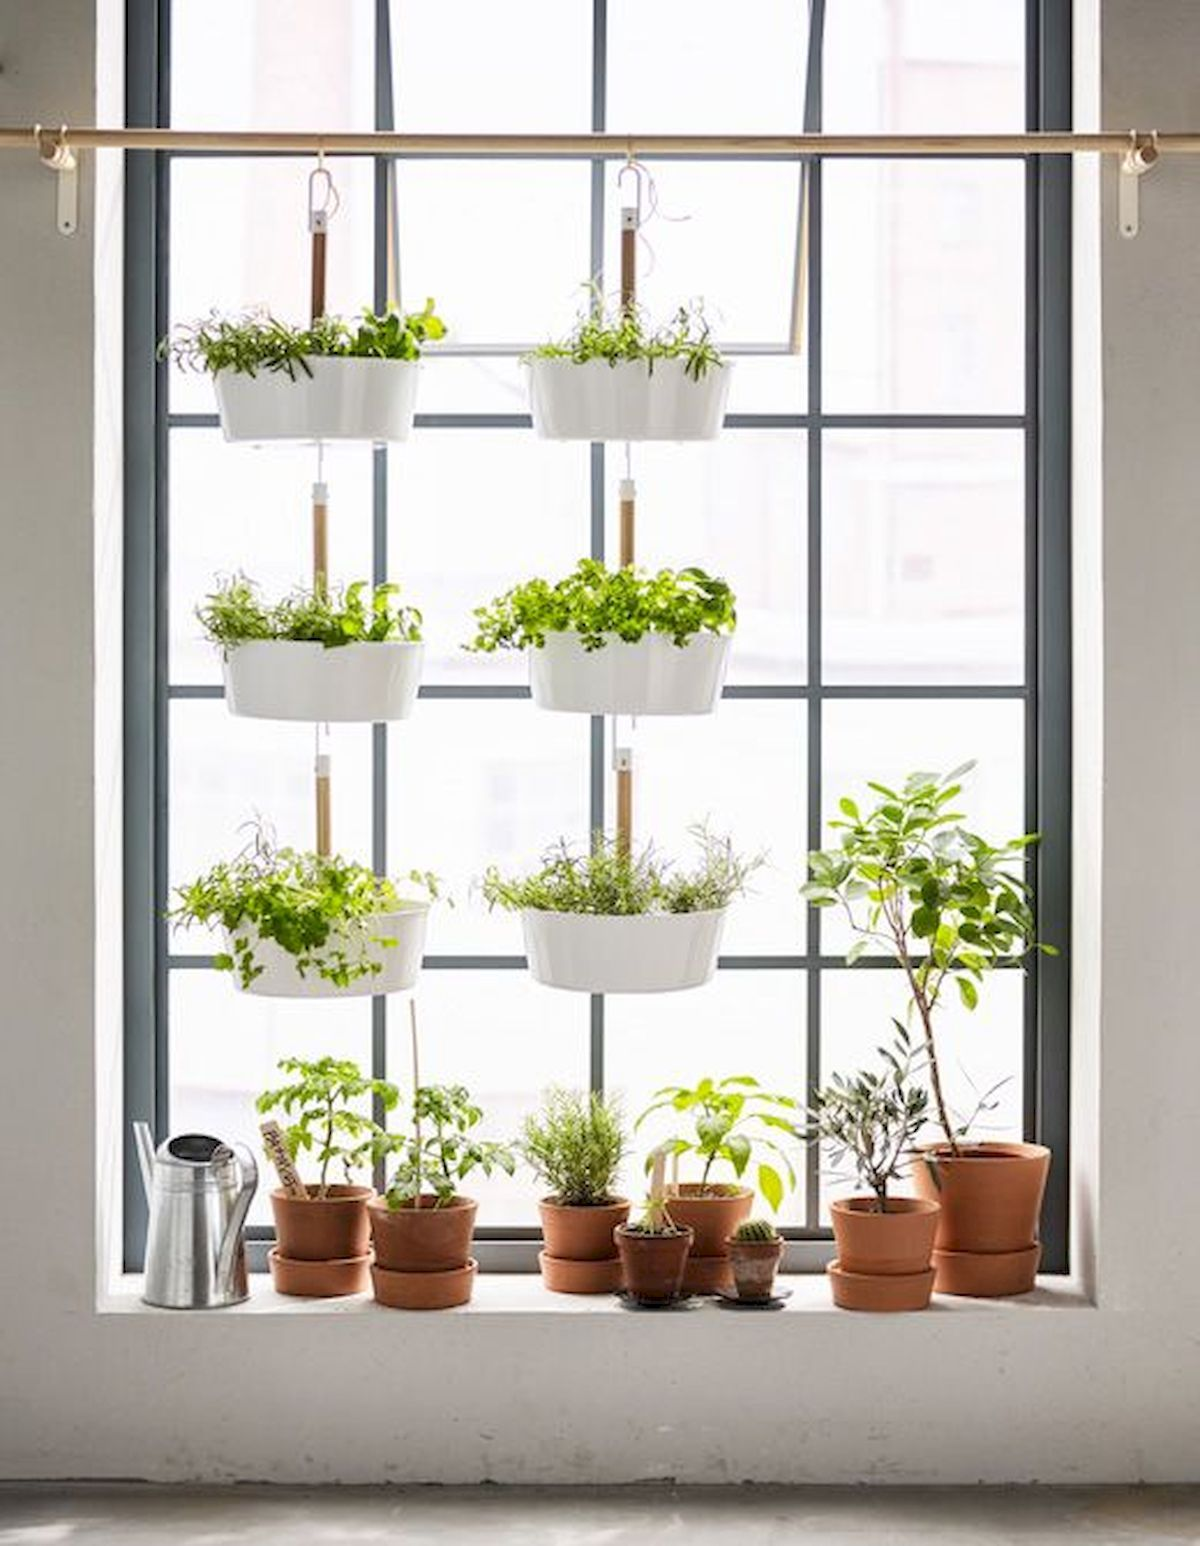 Awesome Most Attractive Diy Hanging Garden Ideas For Your Lovely Home Https Hajarfresh Com Most Attractive Diy H Apartment Plants Window Plants Herbs Indoors